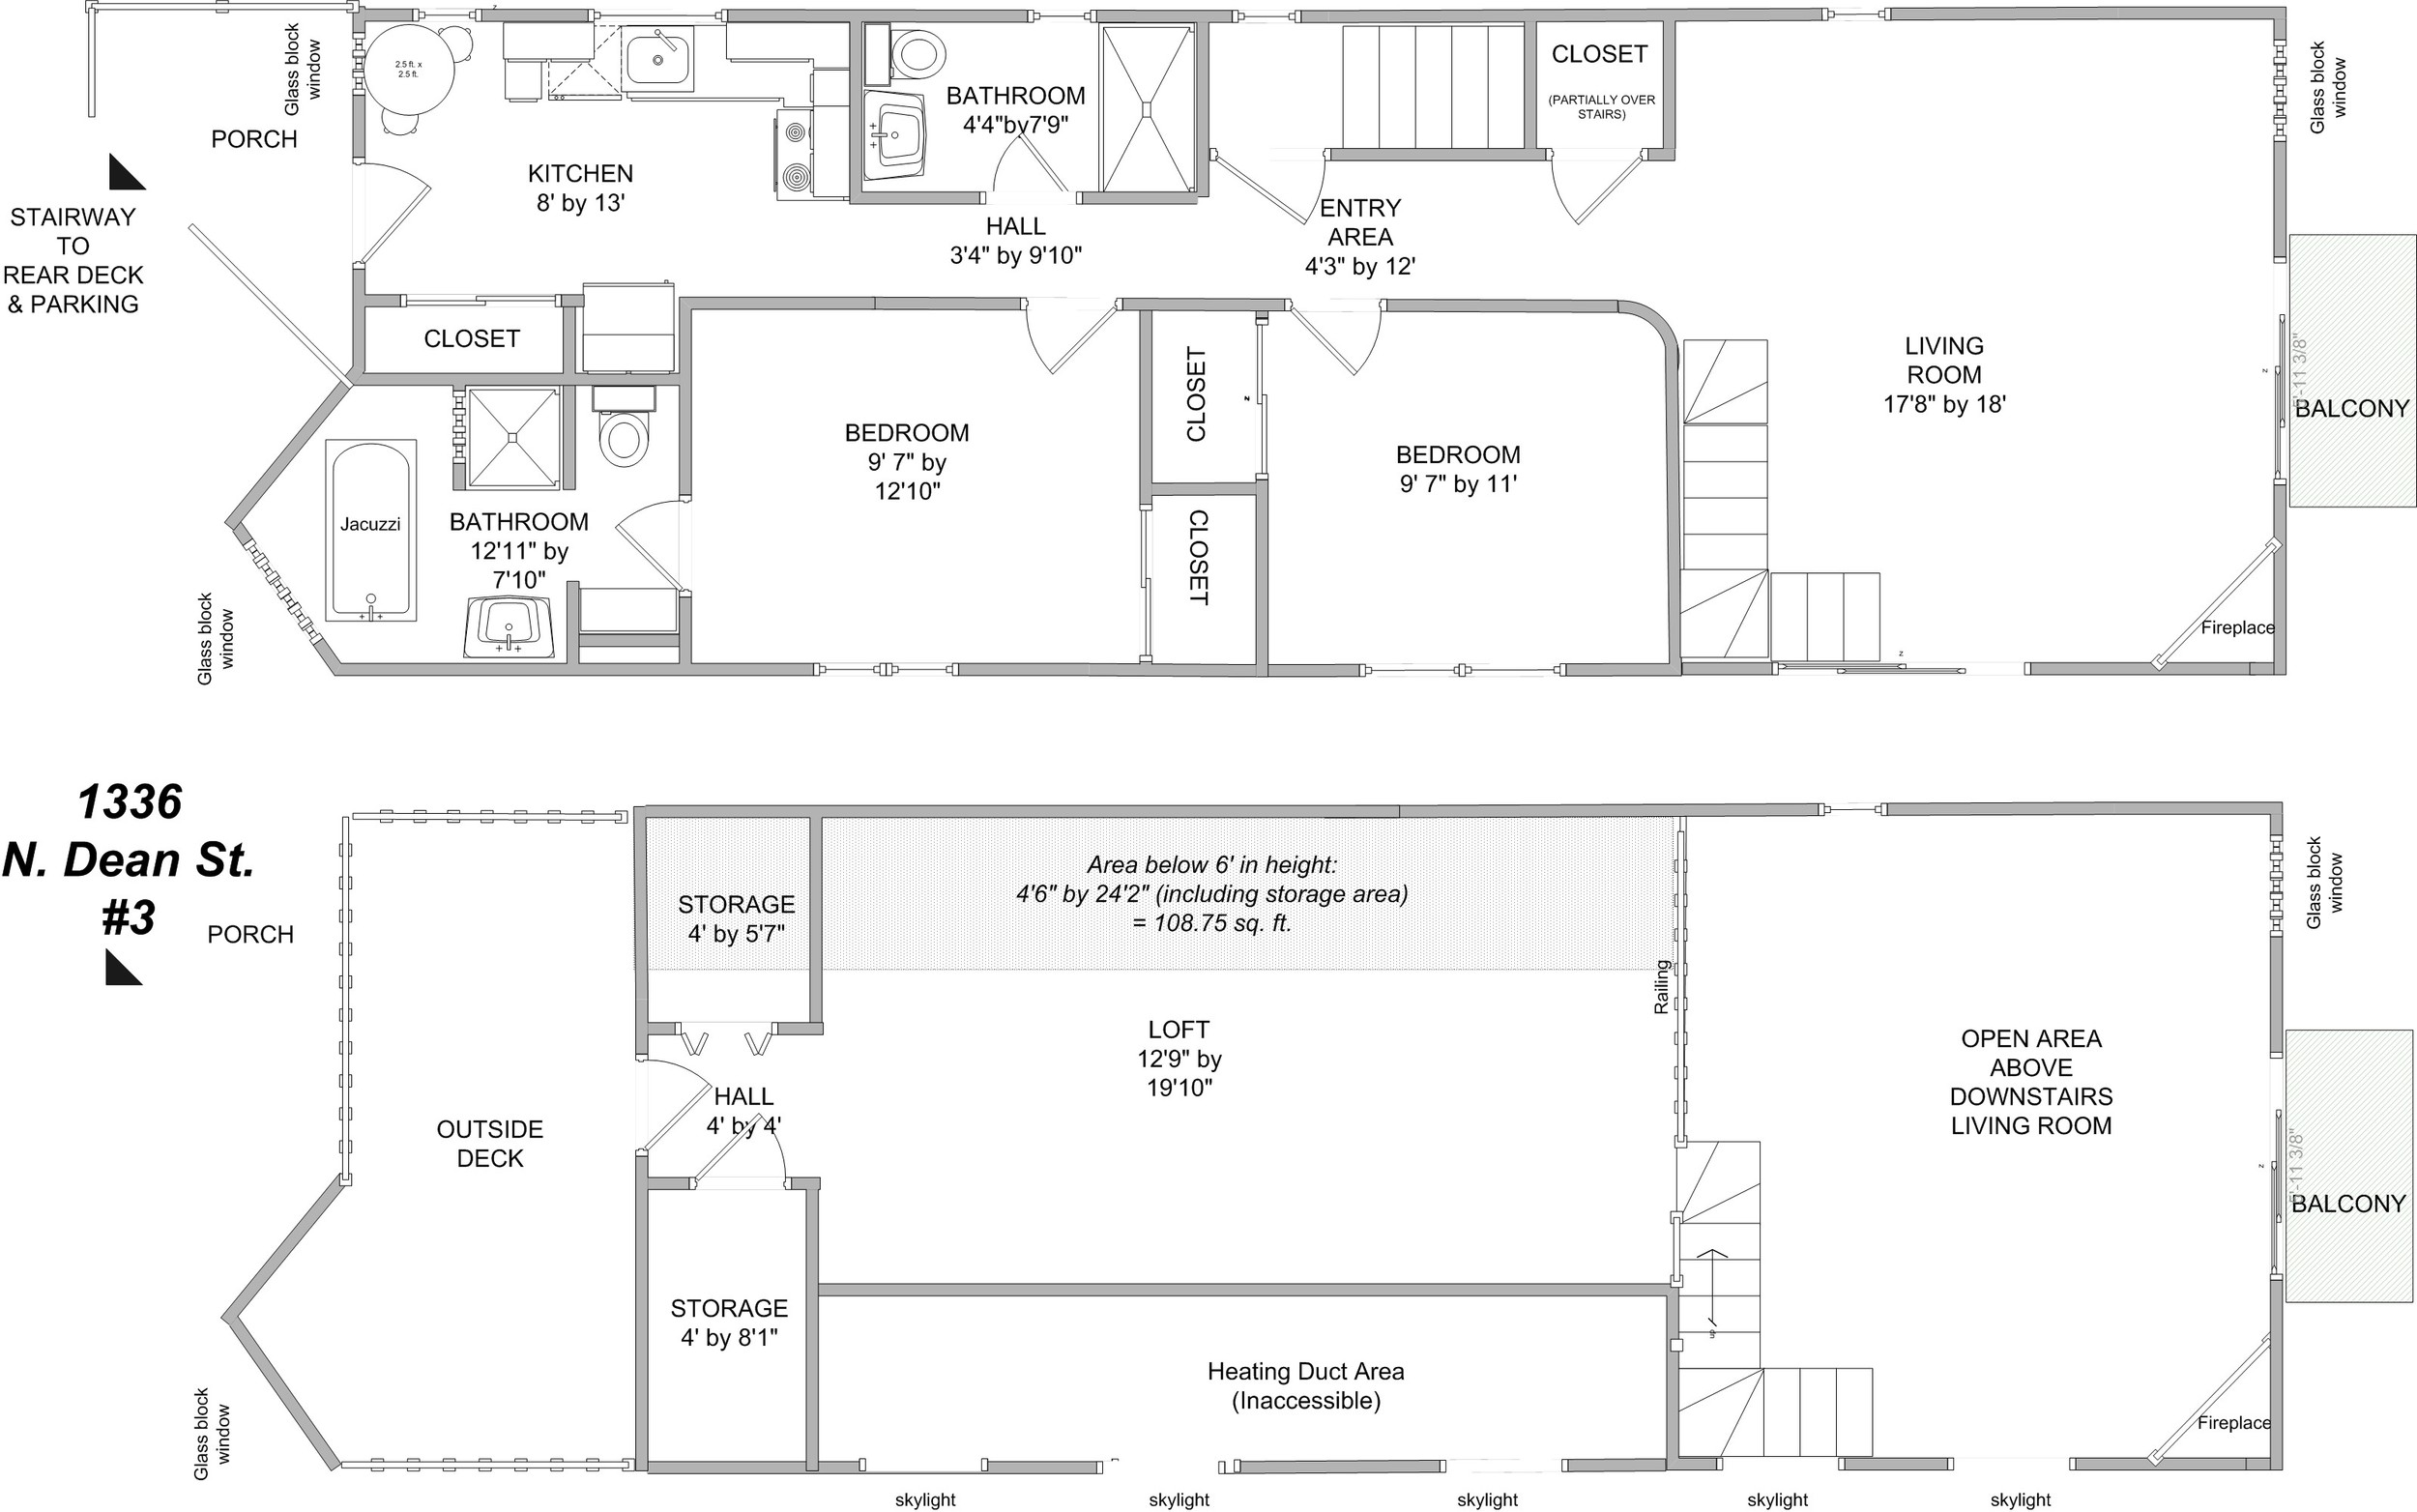 Click floorplan image to zoom in.